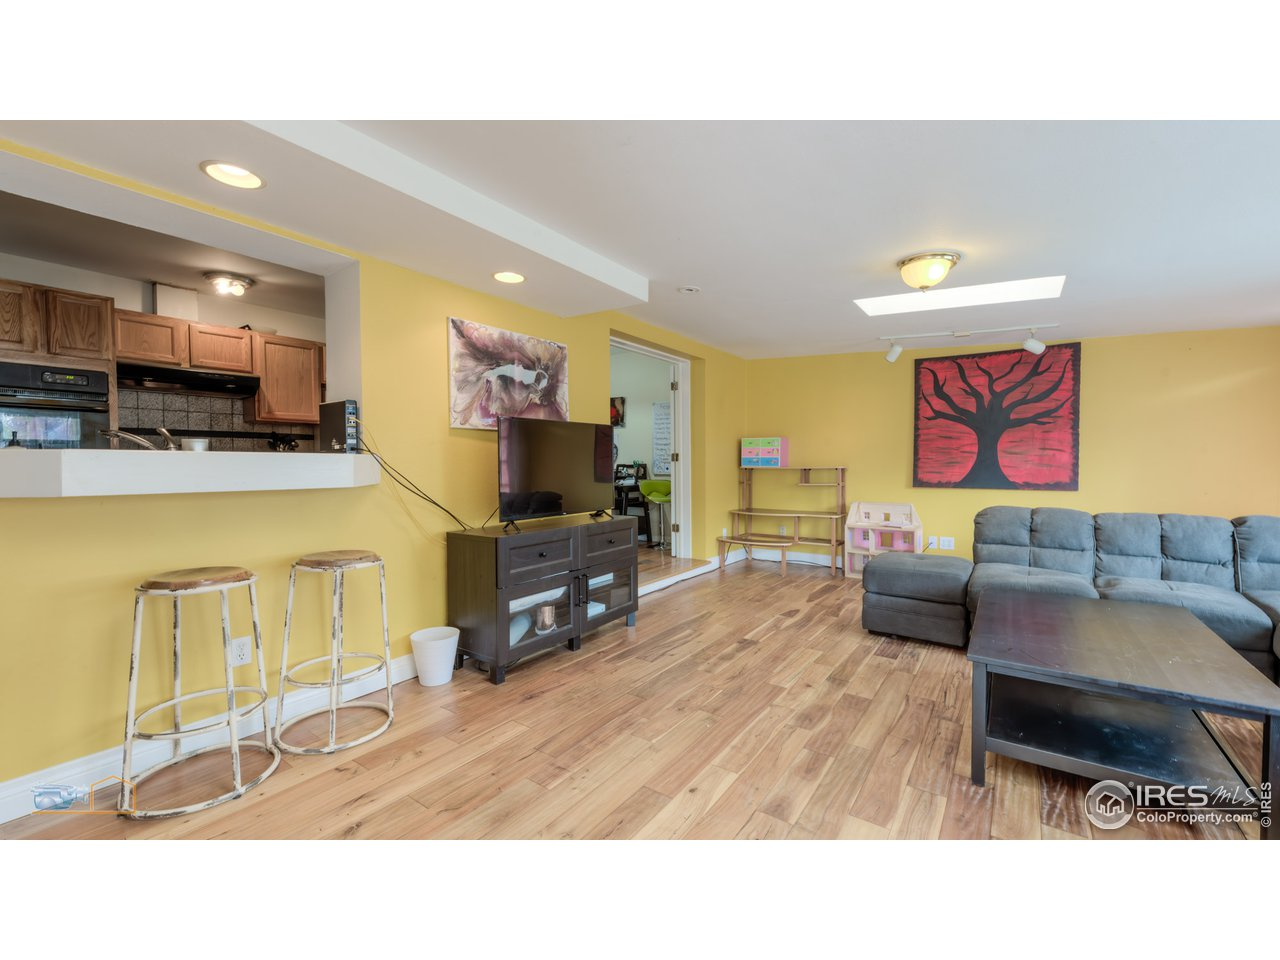 Opens to kitchen and dining room